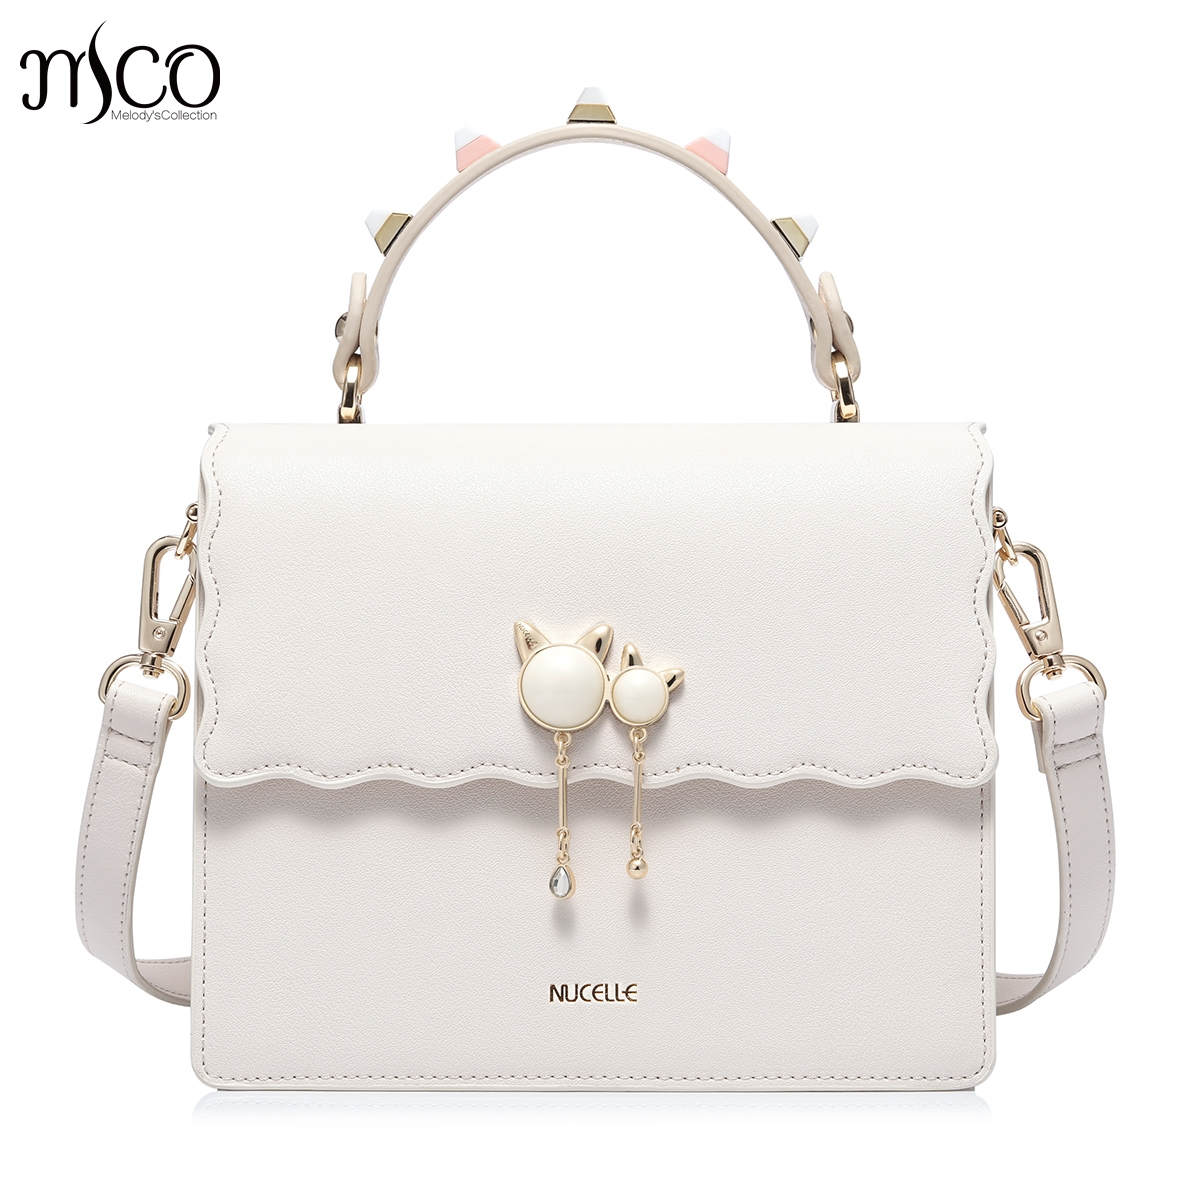 Just Star 2018 Brand Design Fashion Classic Pu Leather Women S Las Handbag Shoulder Bags High Quality Sac A Main In Top Handle From Luggage